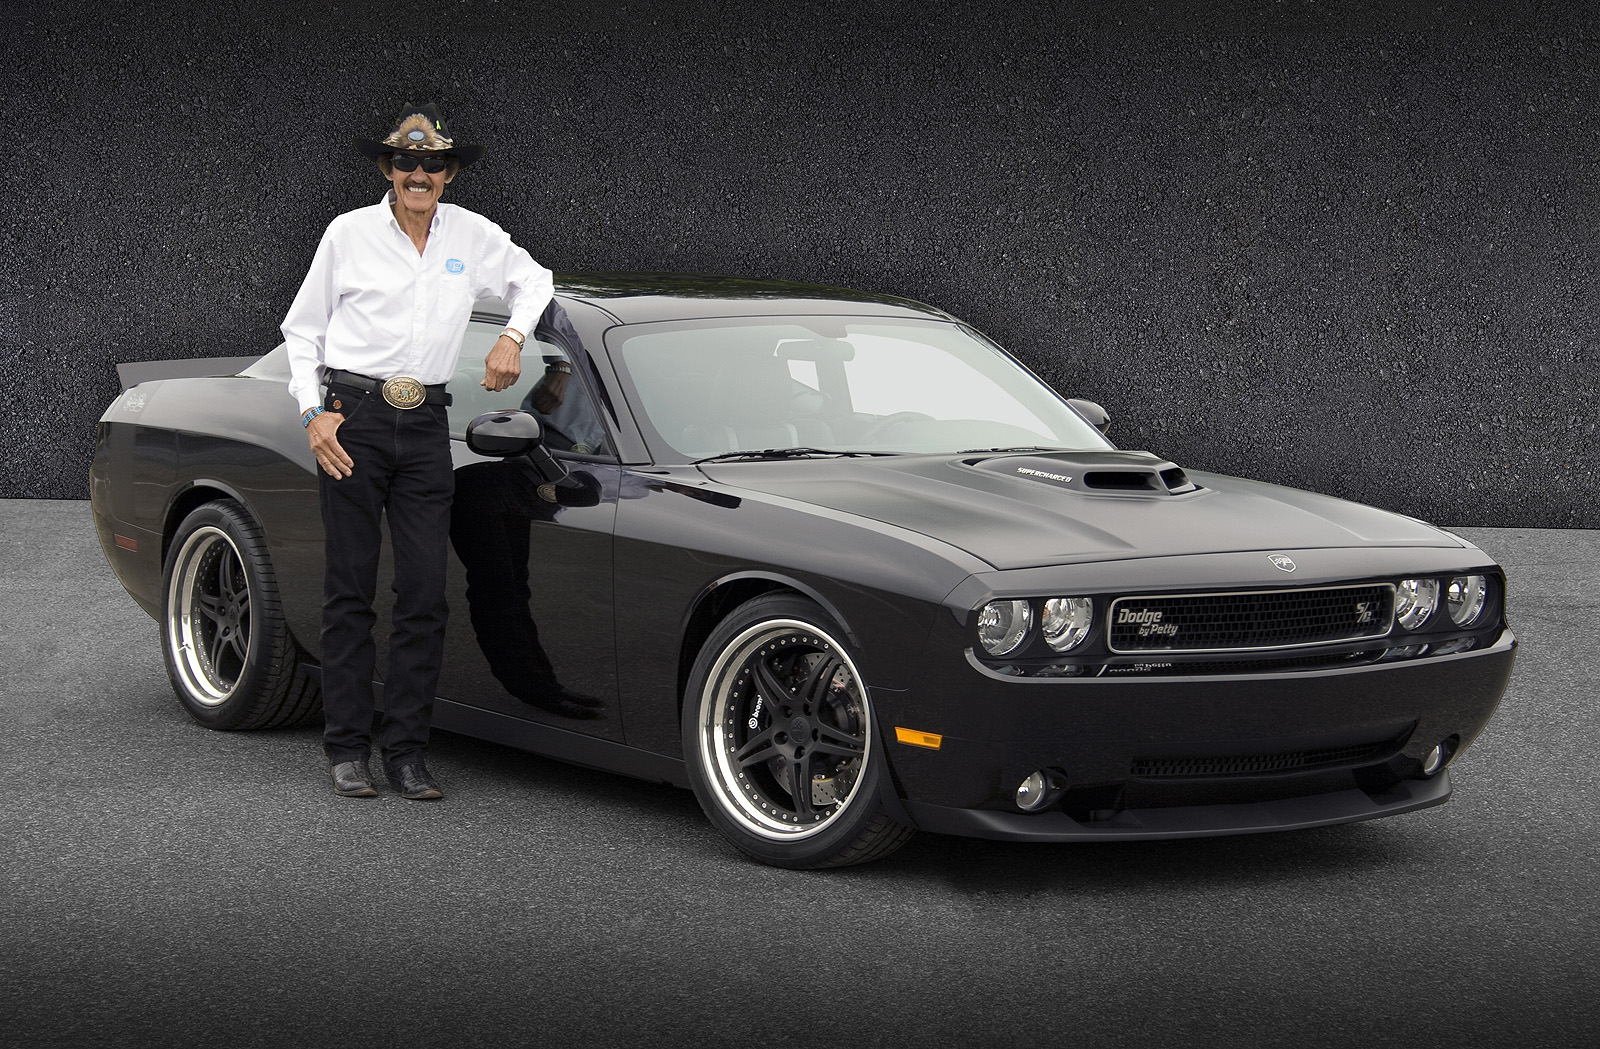 Challenger Shaker For Sale >> 2010 Dodge Challenger Richard Petty Signature Series | Top Speed